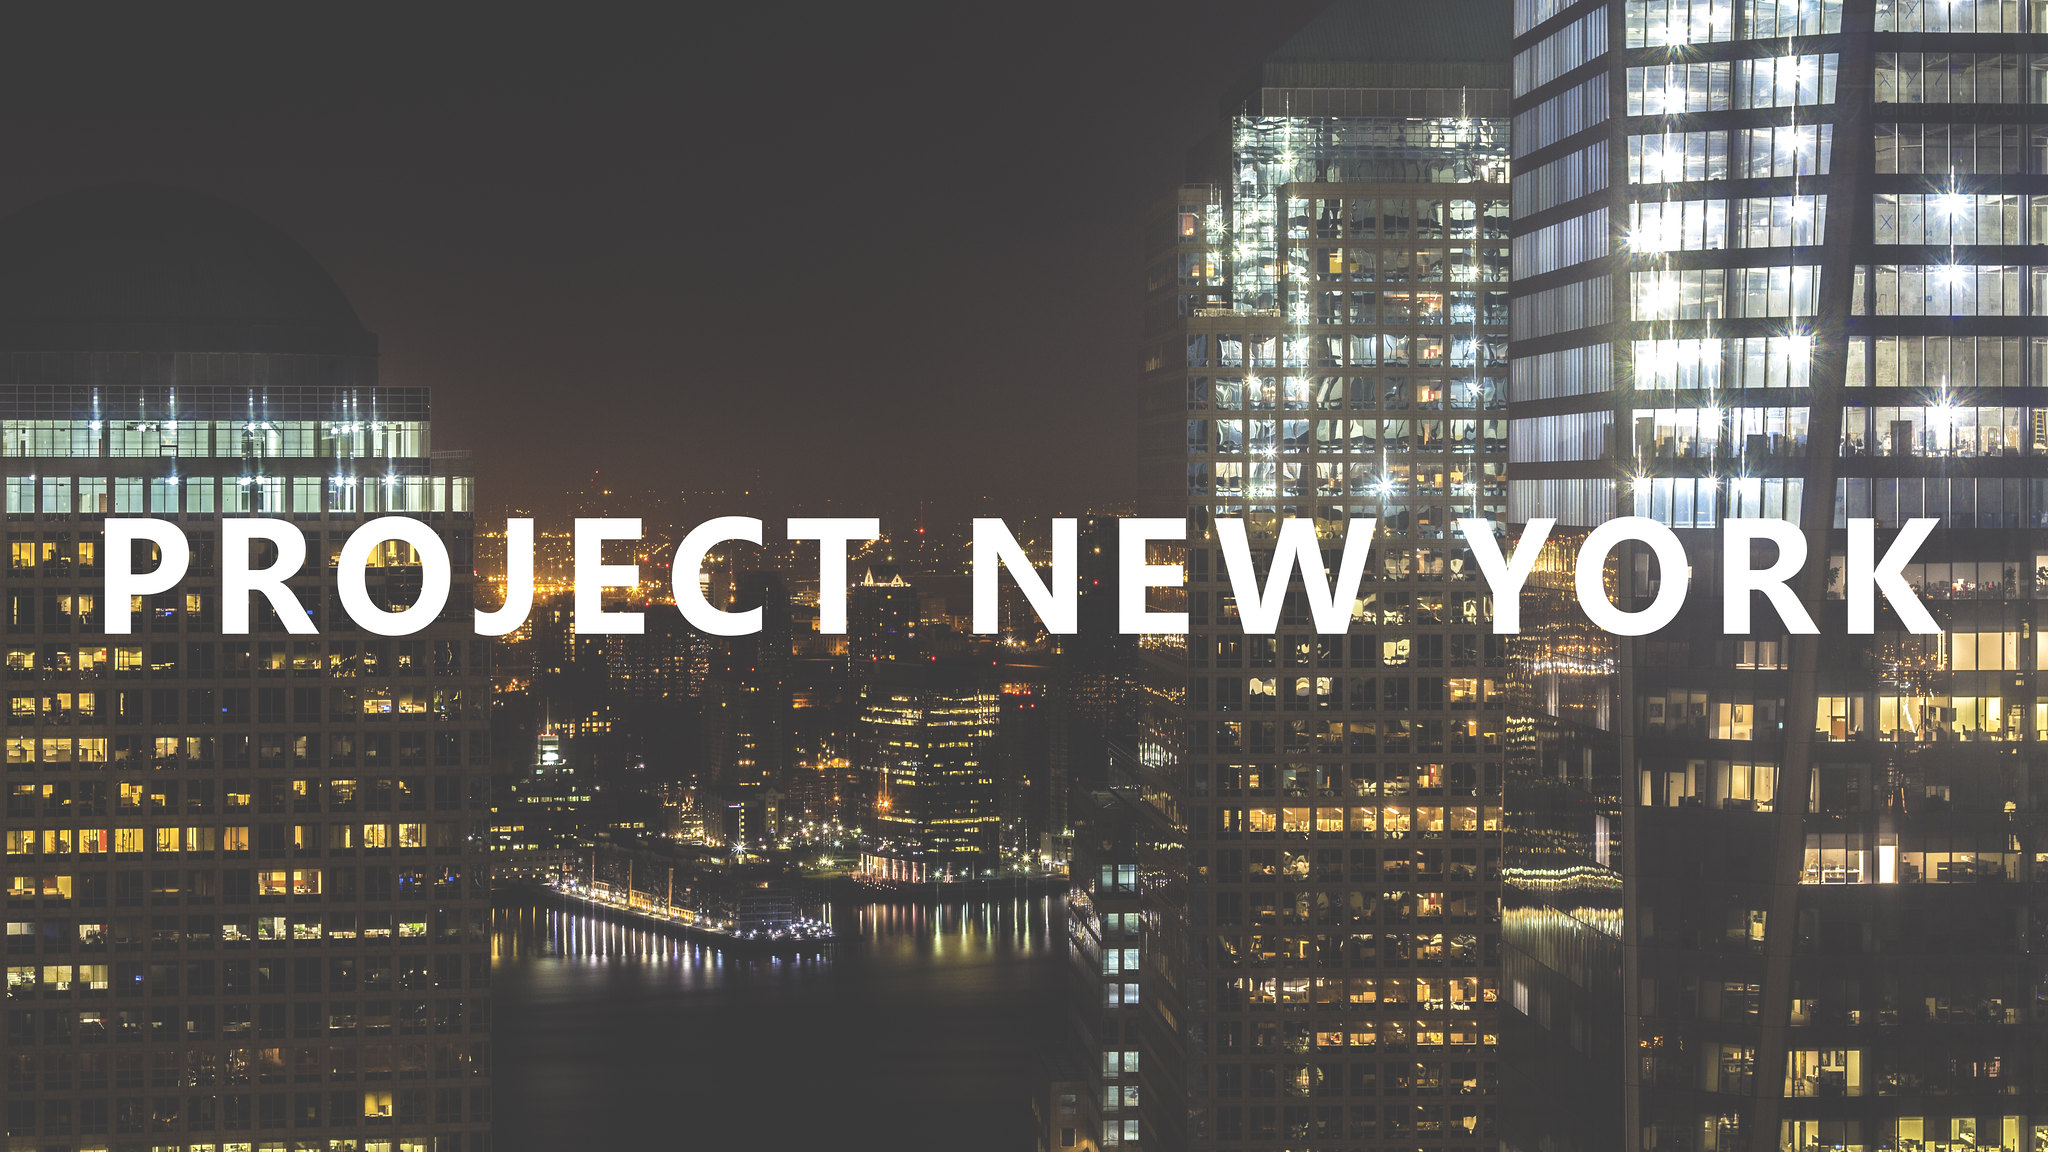 Shanna May | Project New York